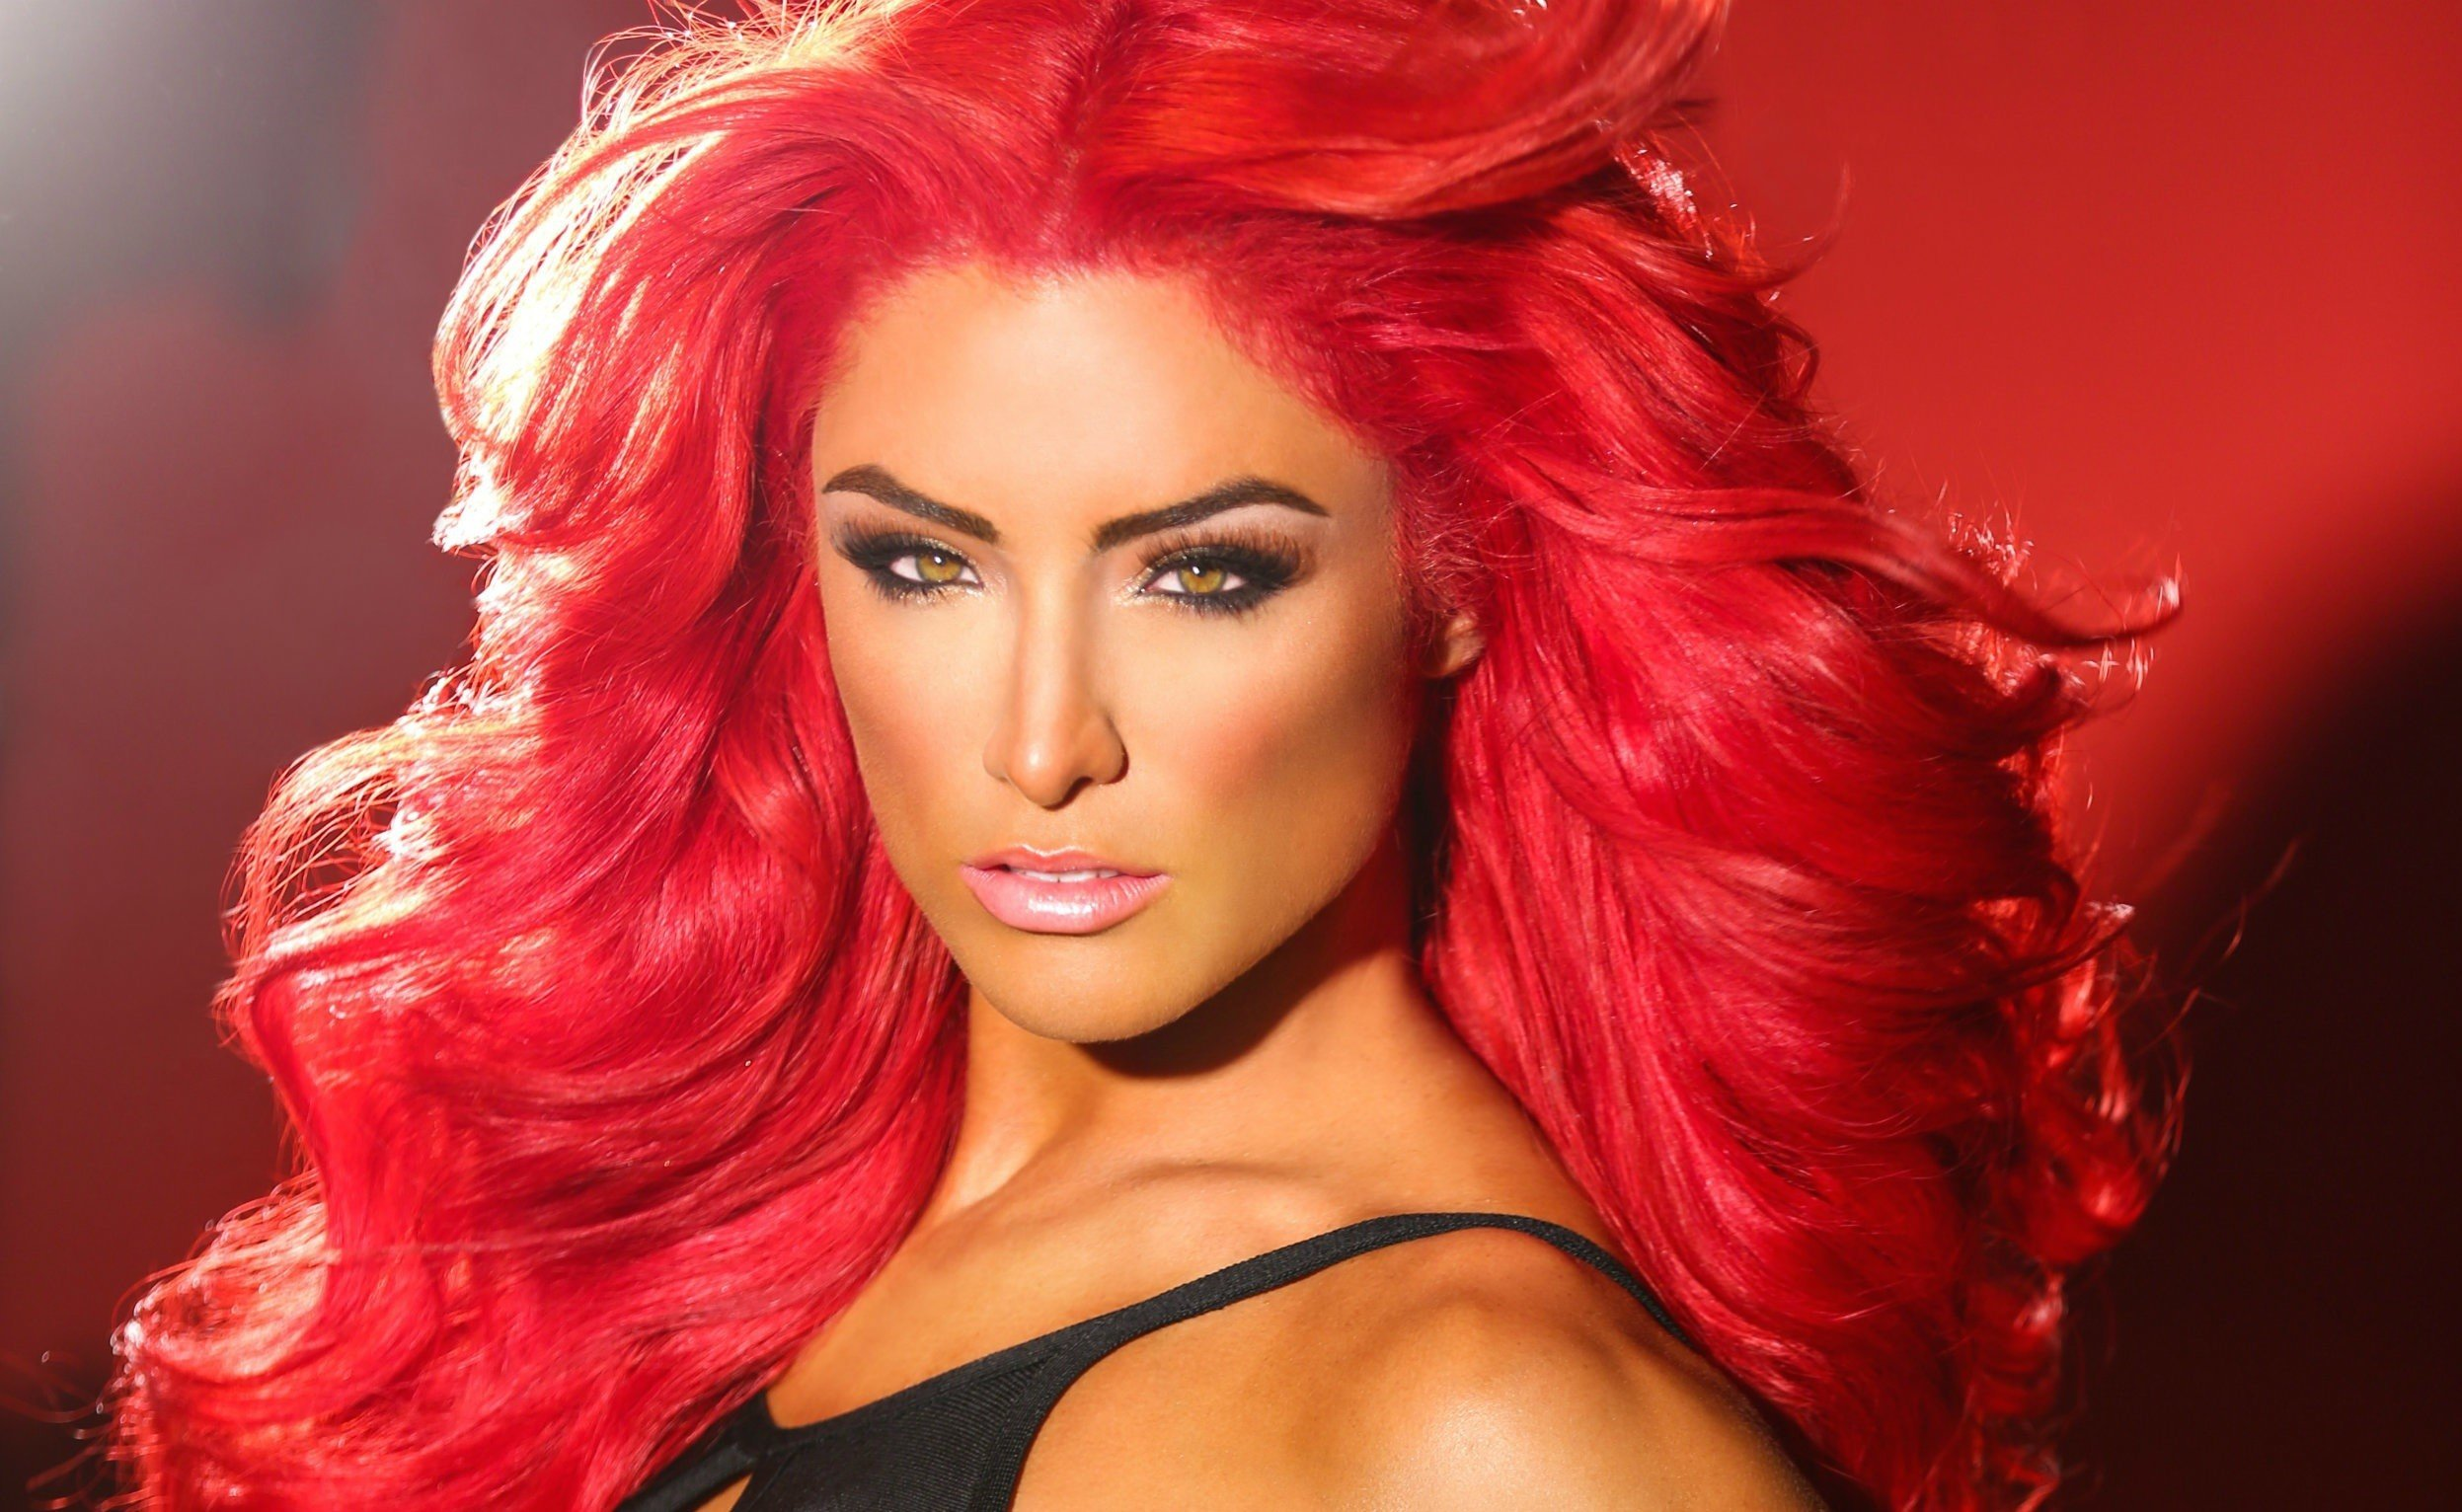 Eva Marie HD Wallpapers